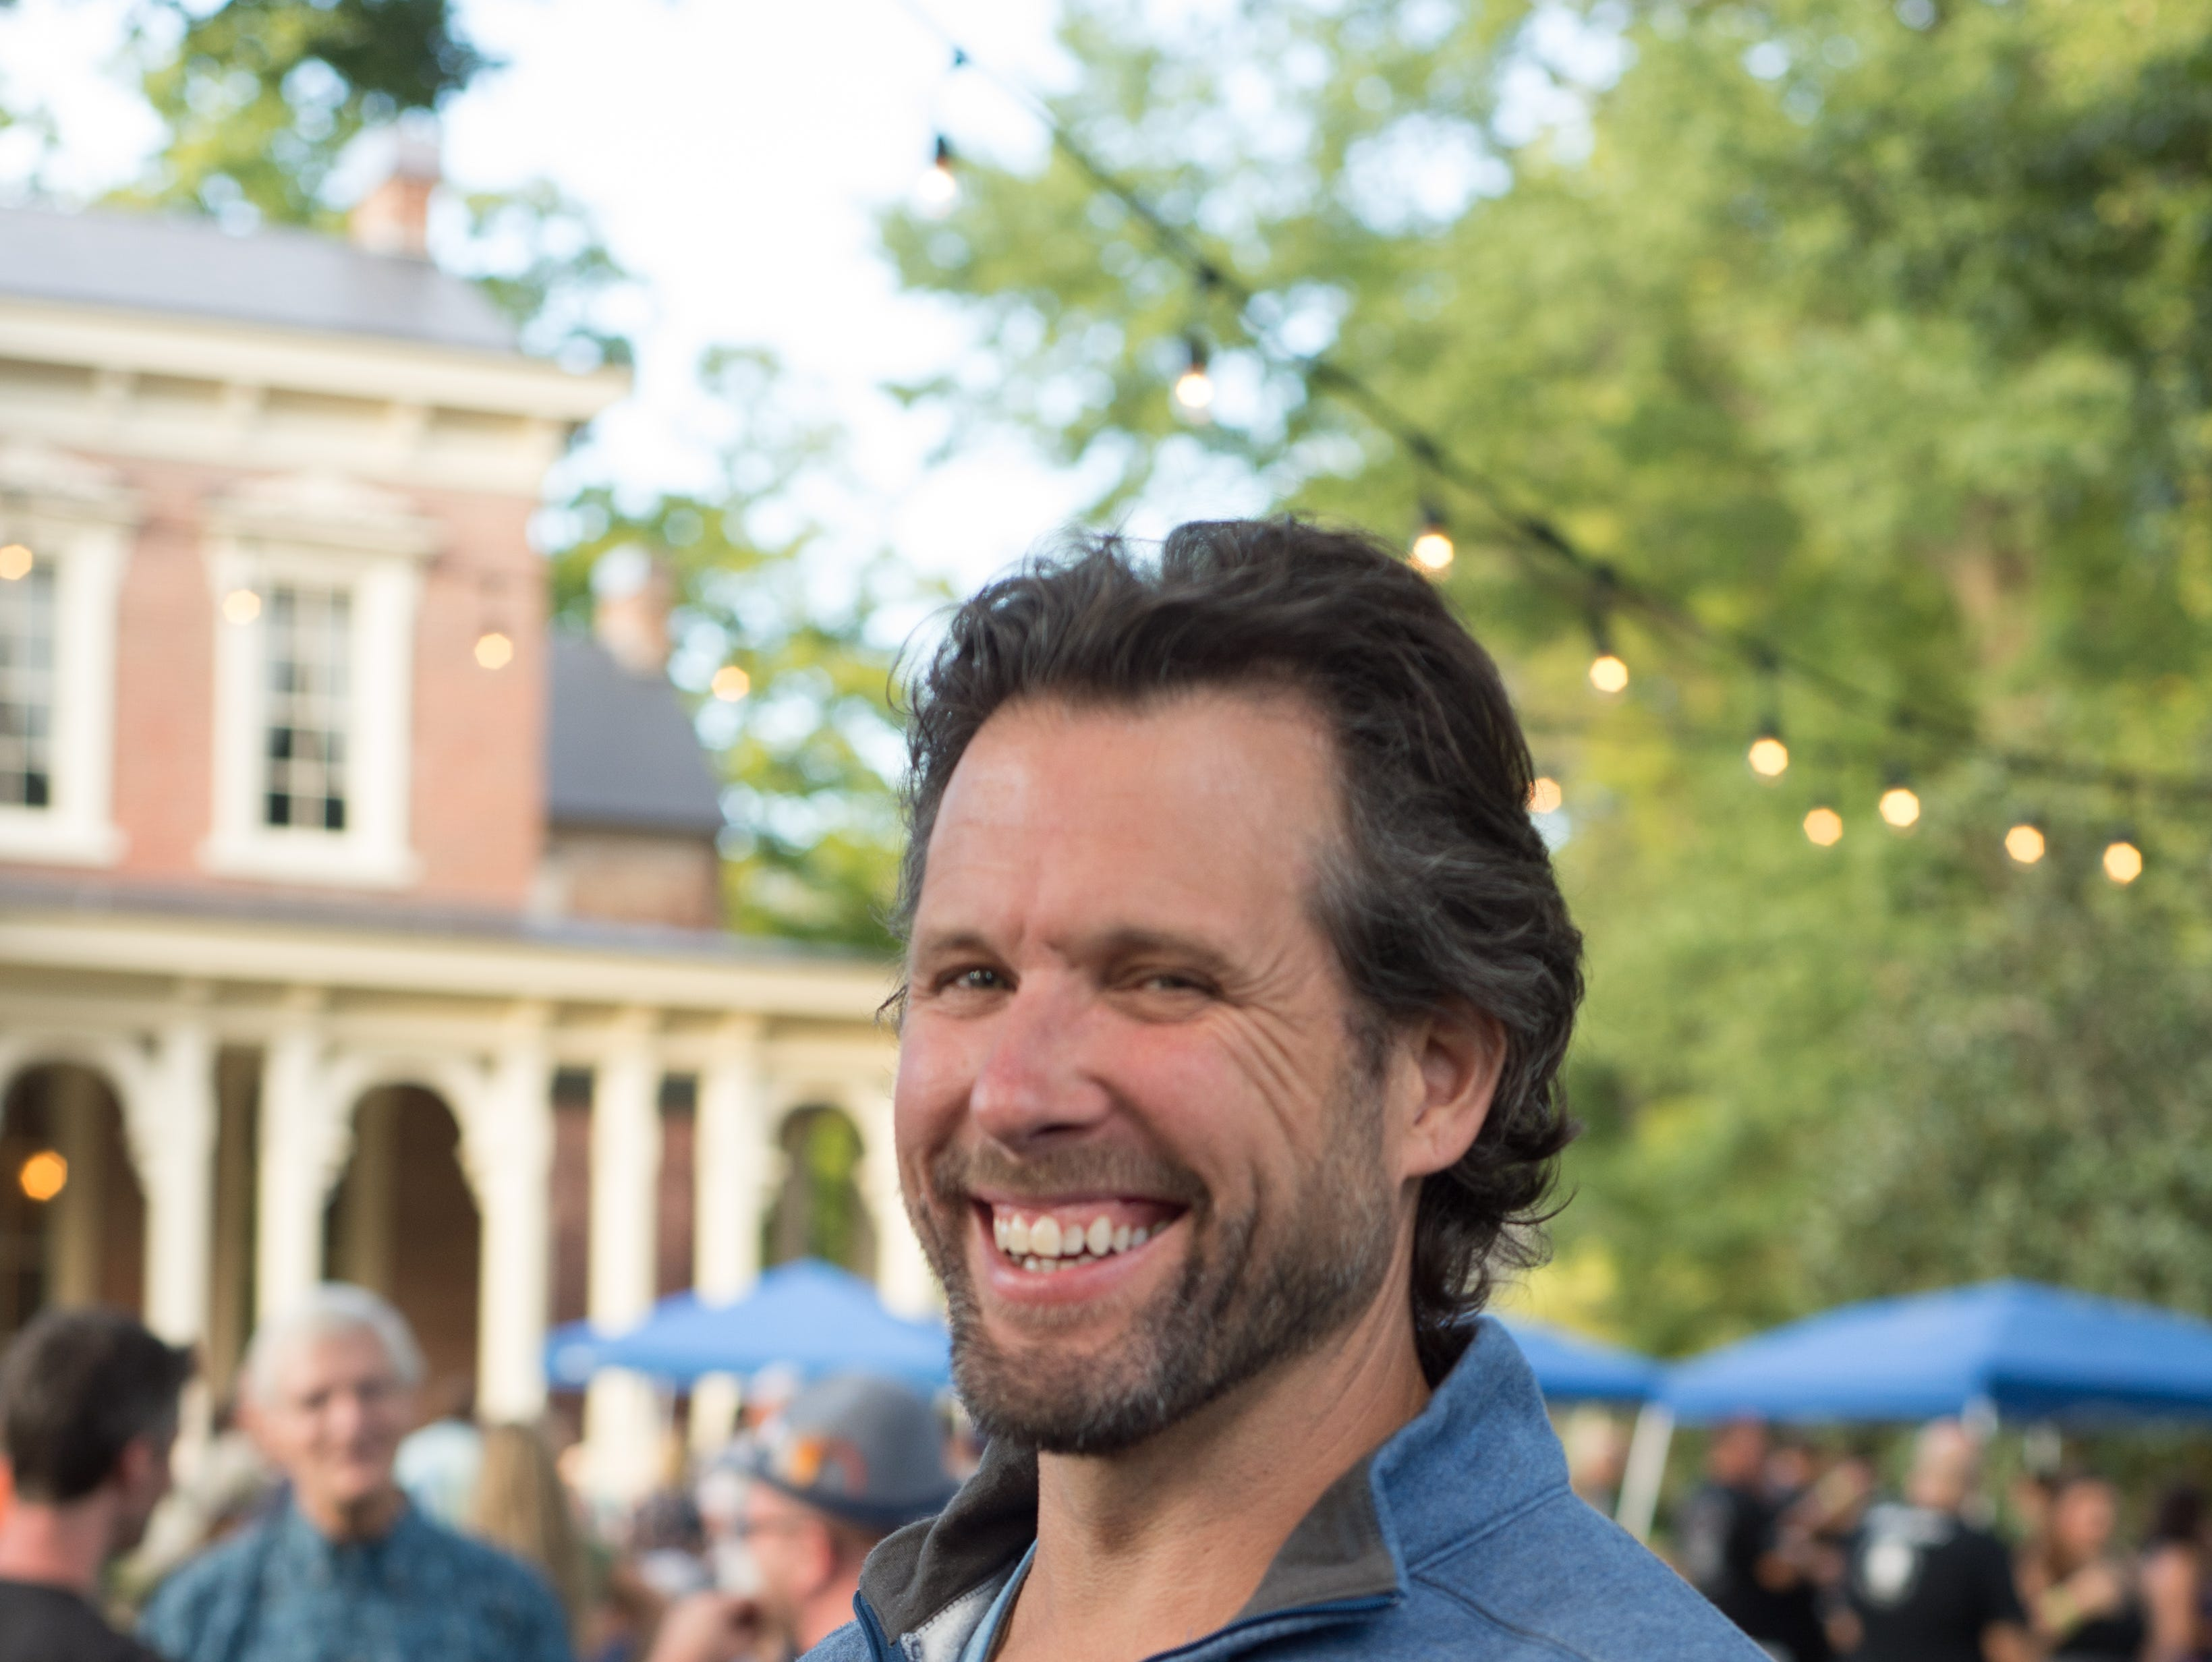 Scott Enoch has a good time during Oktoberfest at Oaklands Mansion in Murfreesboro on Saturday, Sept. 29.